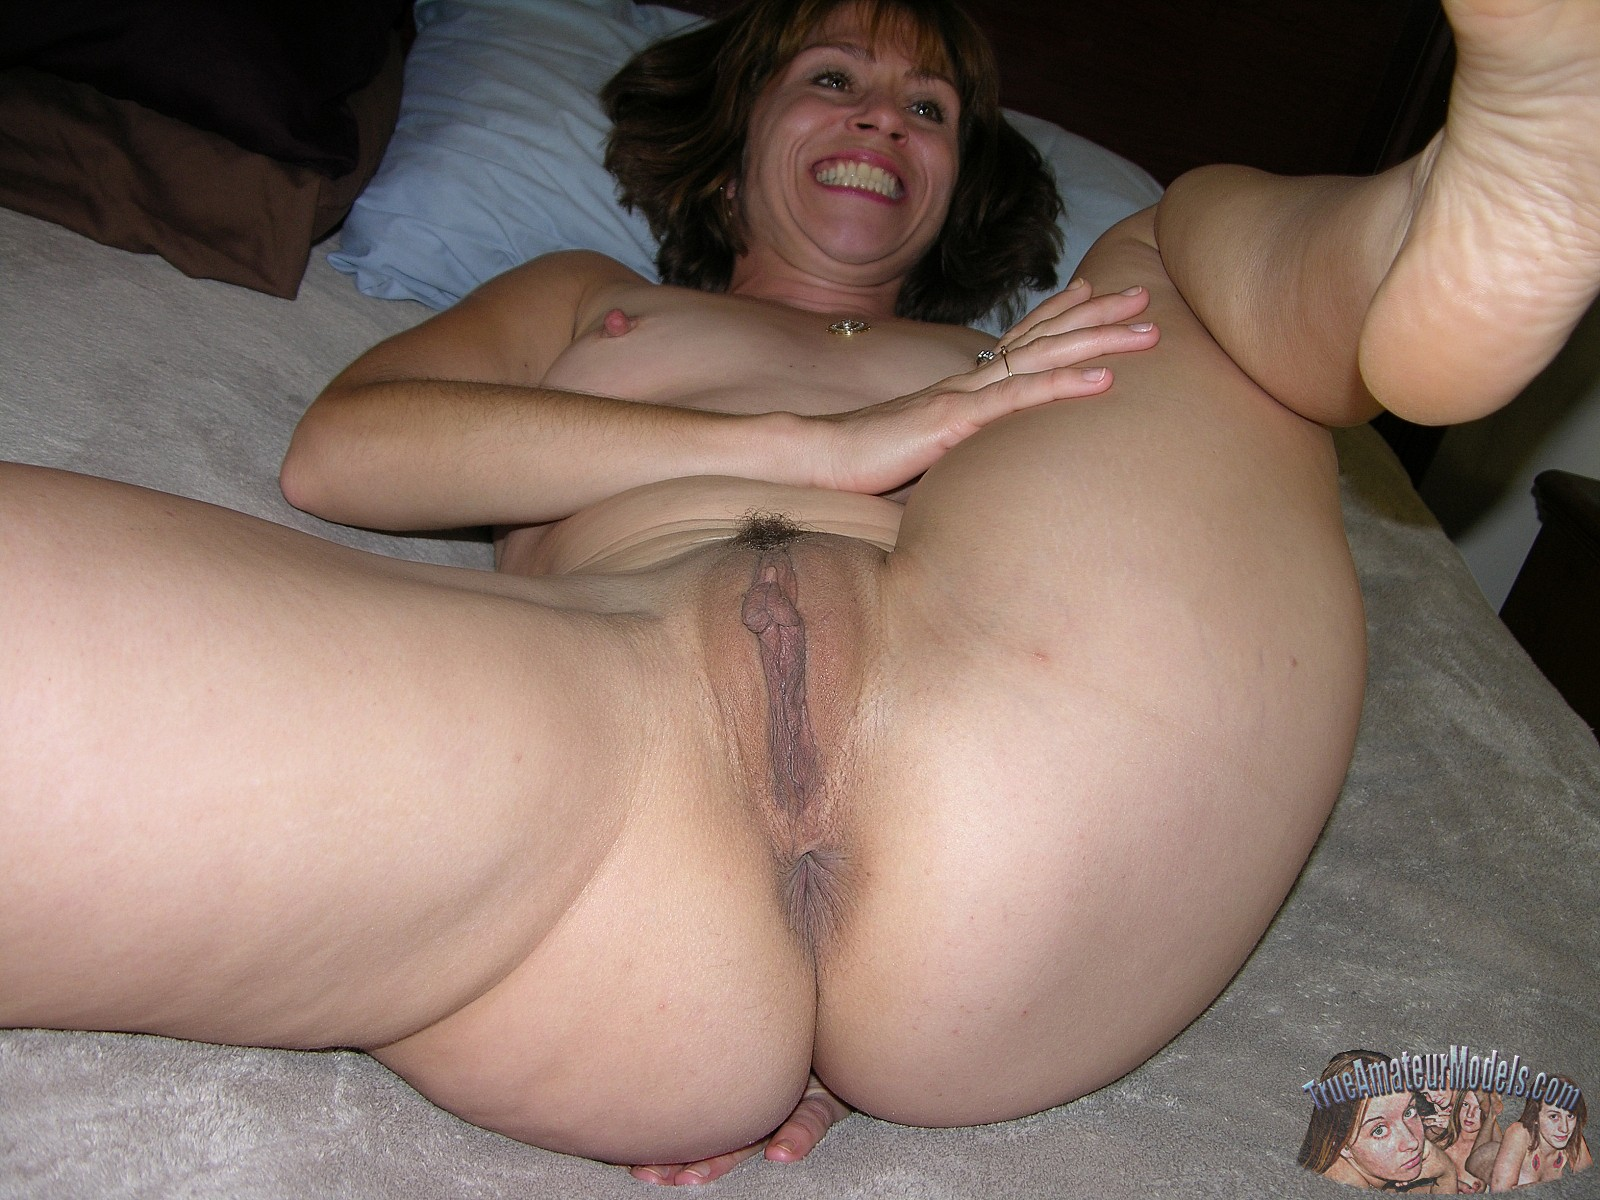 Milf wife big boobs free pics